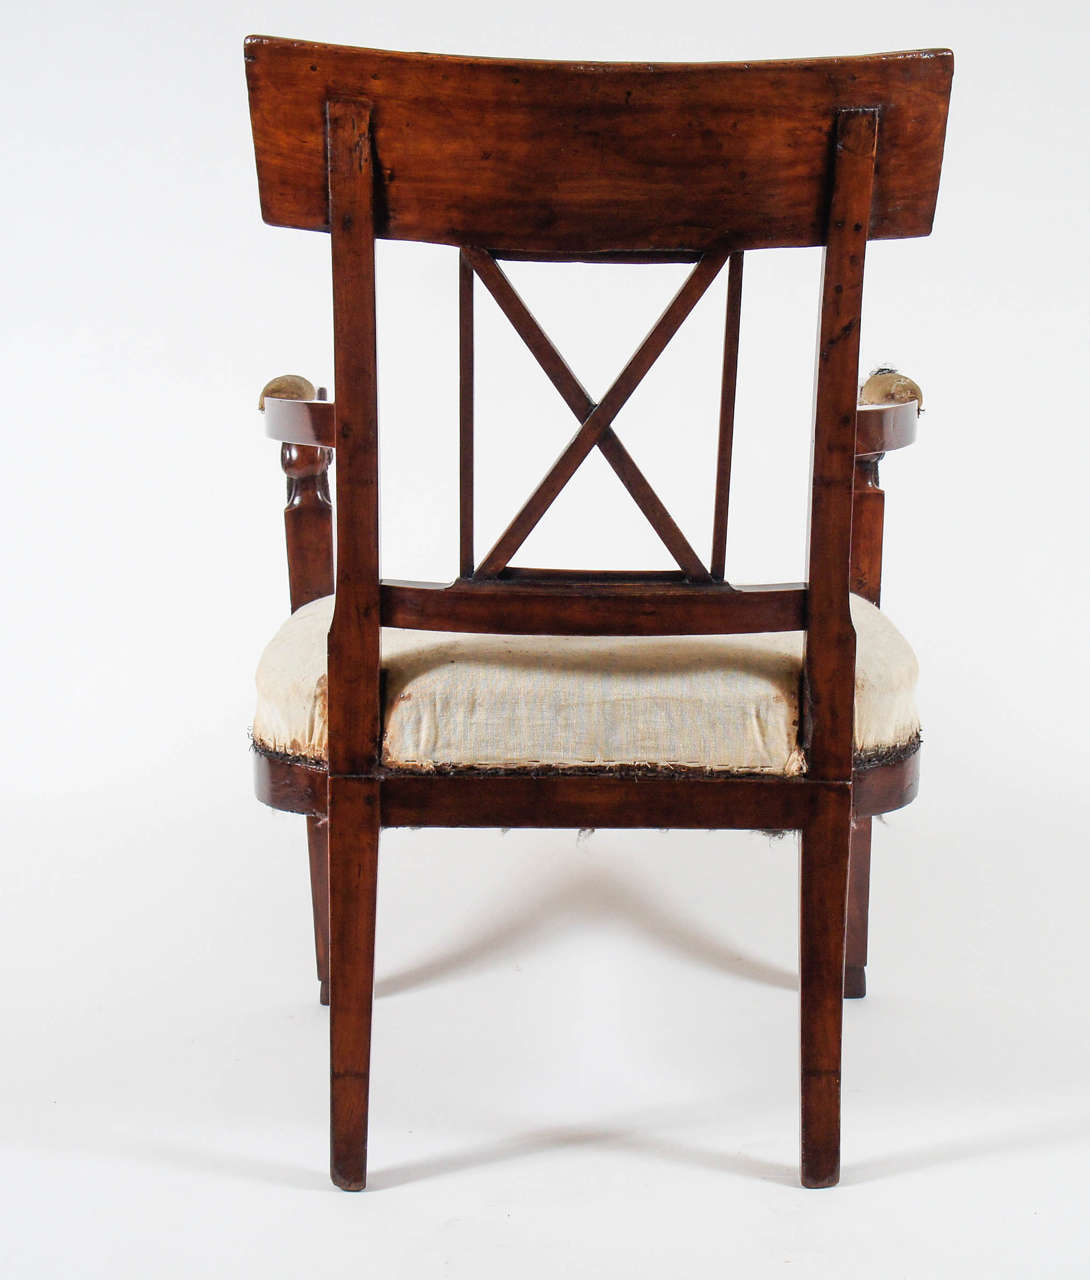 Italian Neoclassical Consulate Fauteuil or Armchair, Italy, circa 1800 For Sale